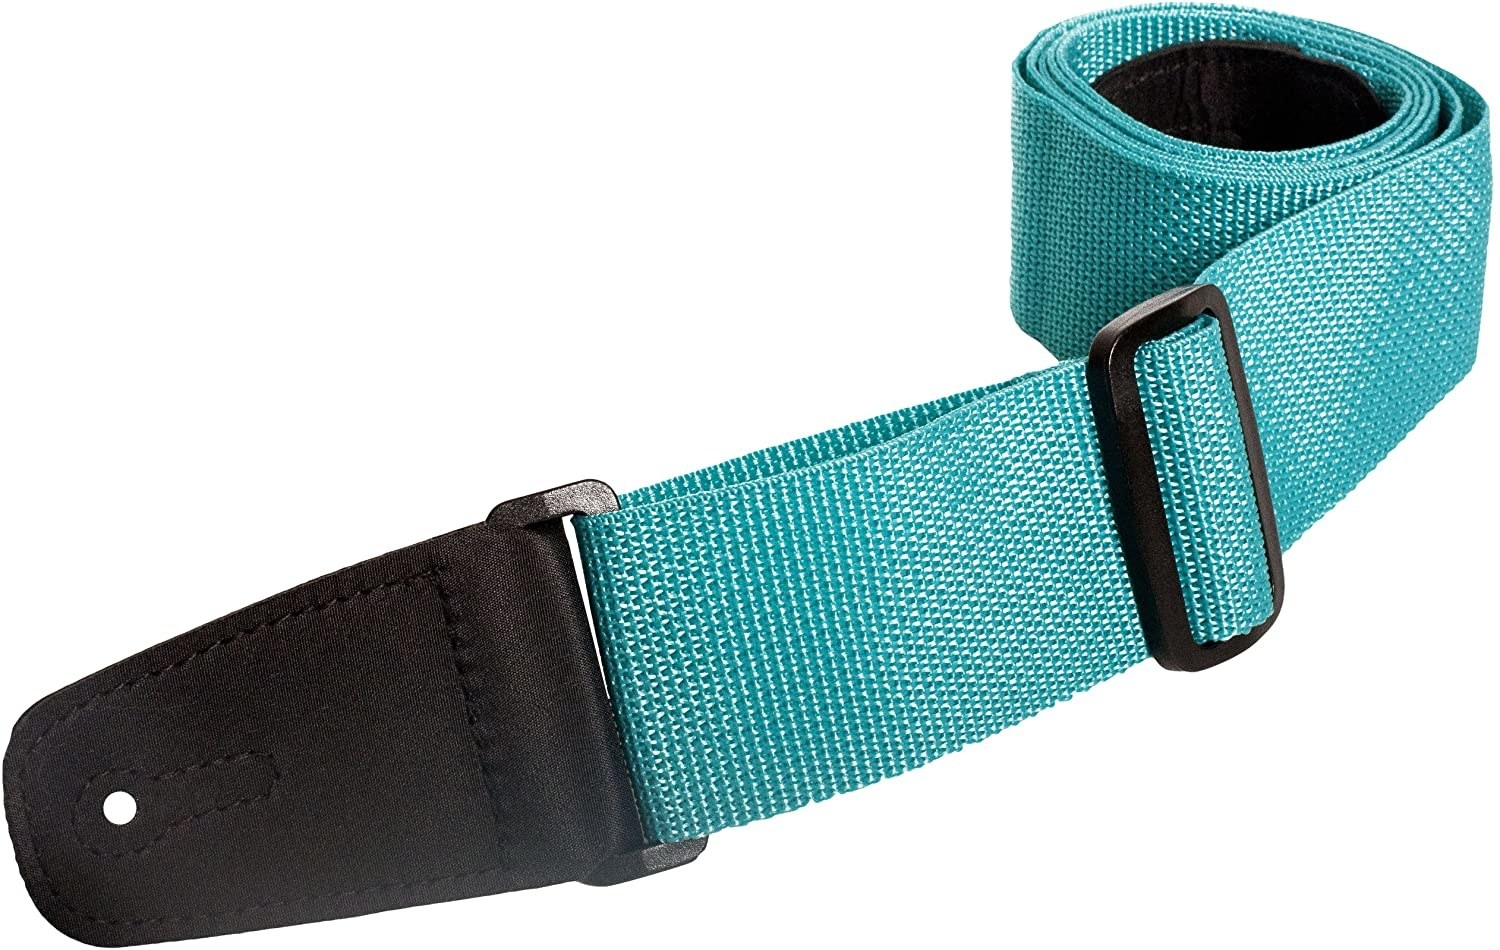 A closeup of the guitar strap in teal